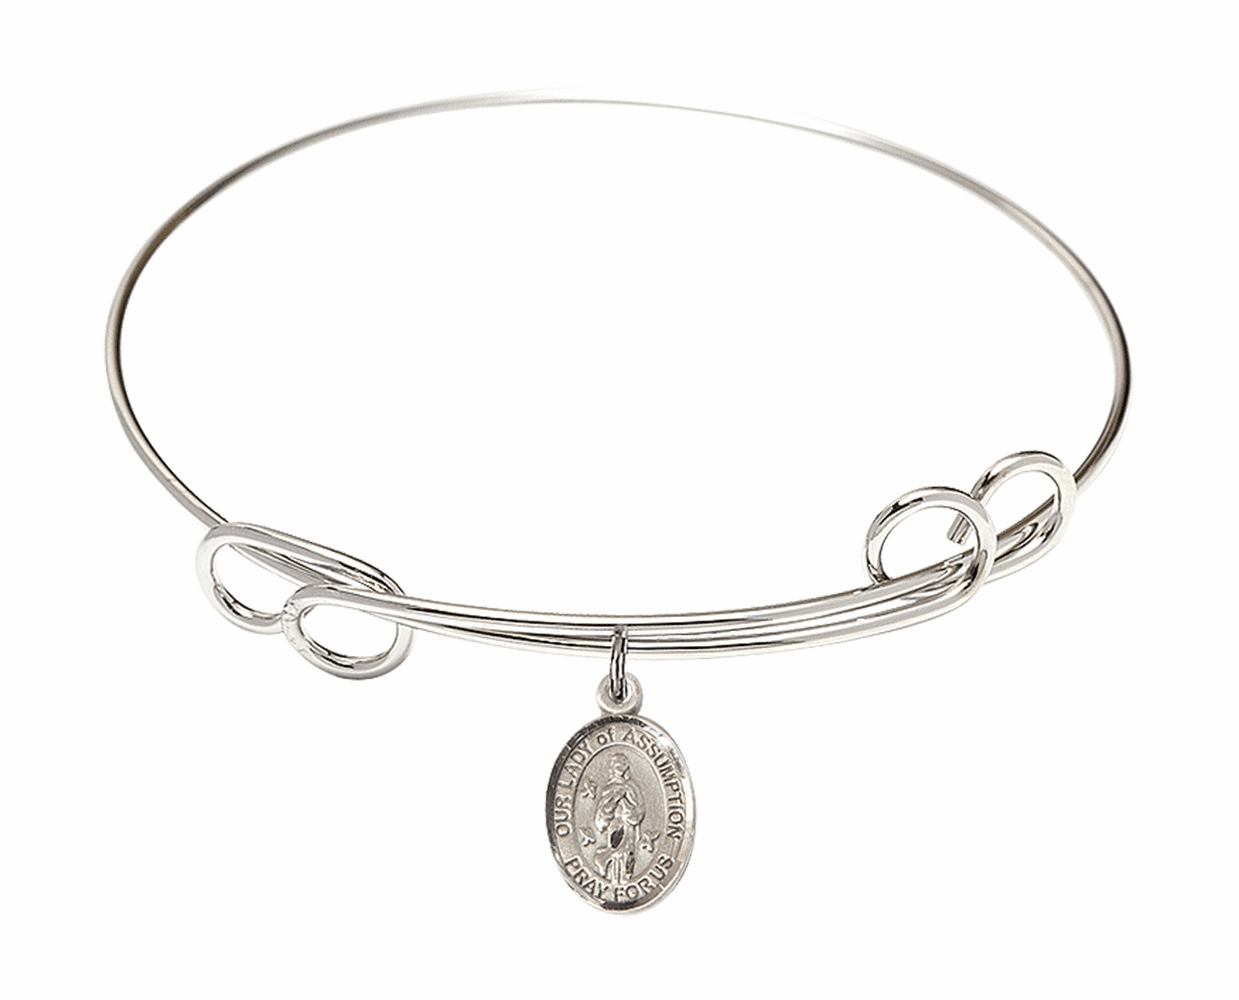 Round Loop Our Lady of Assumption Bangle Charm Bracelet by Bliss